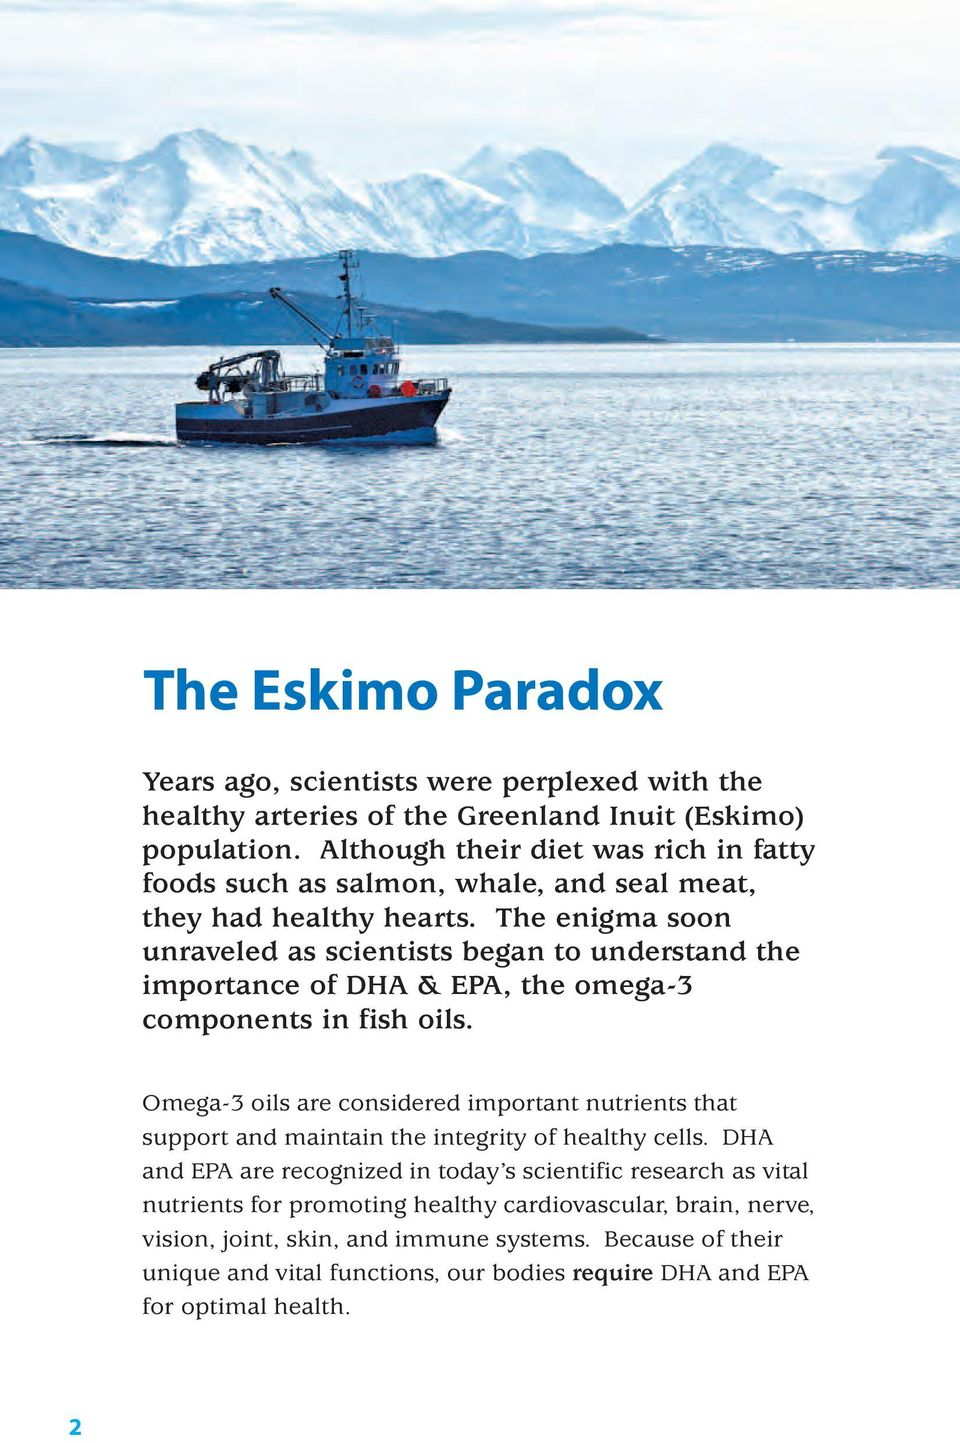 The enigma soon unraveled as scientists began to understand the importance of DHA & EPA, the omega-3 components in fish oils.